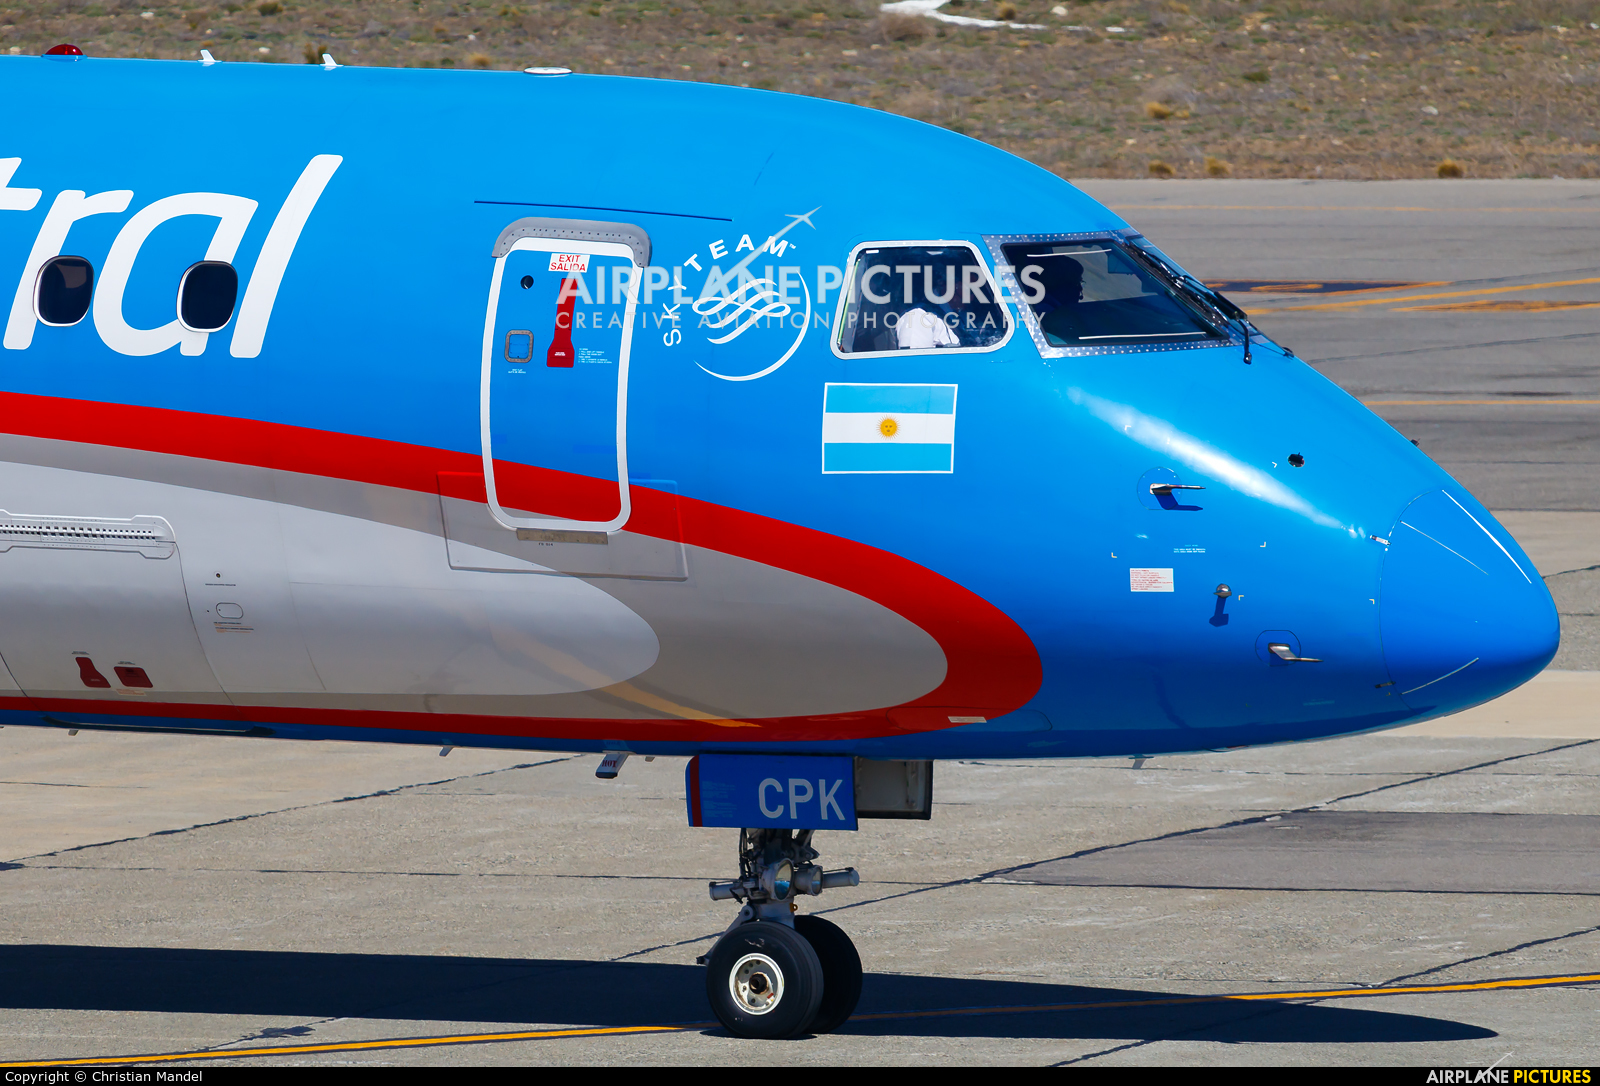 Austral Lineas Aereas LV-CPK aircraft at Bariloche